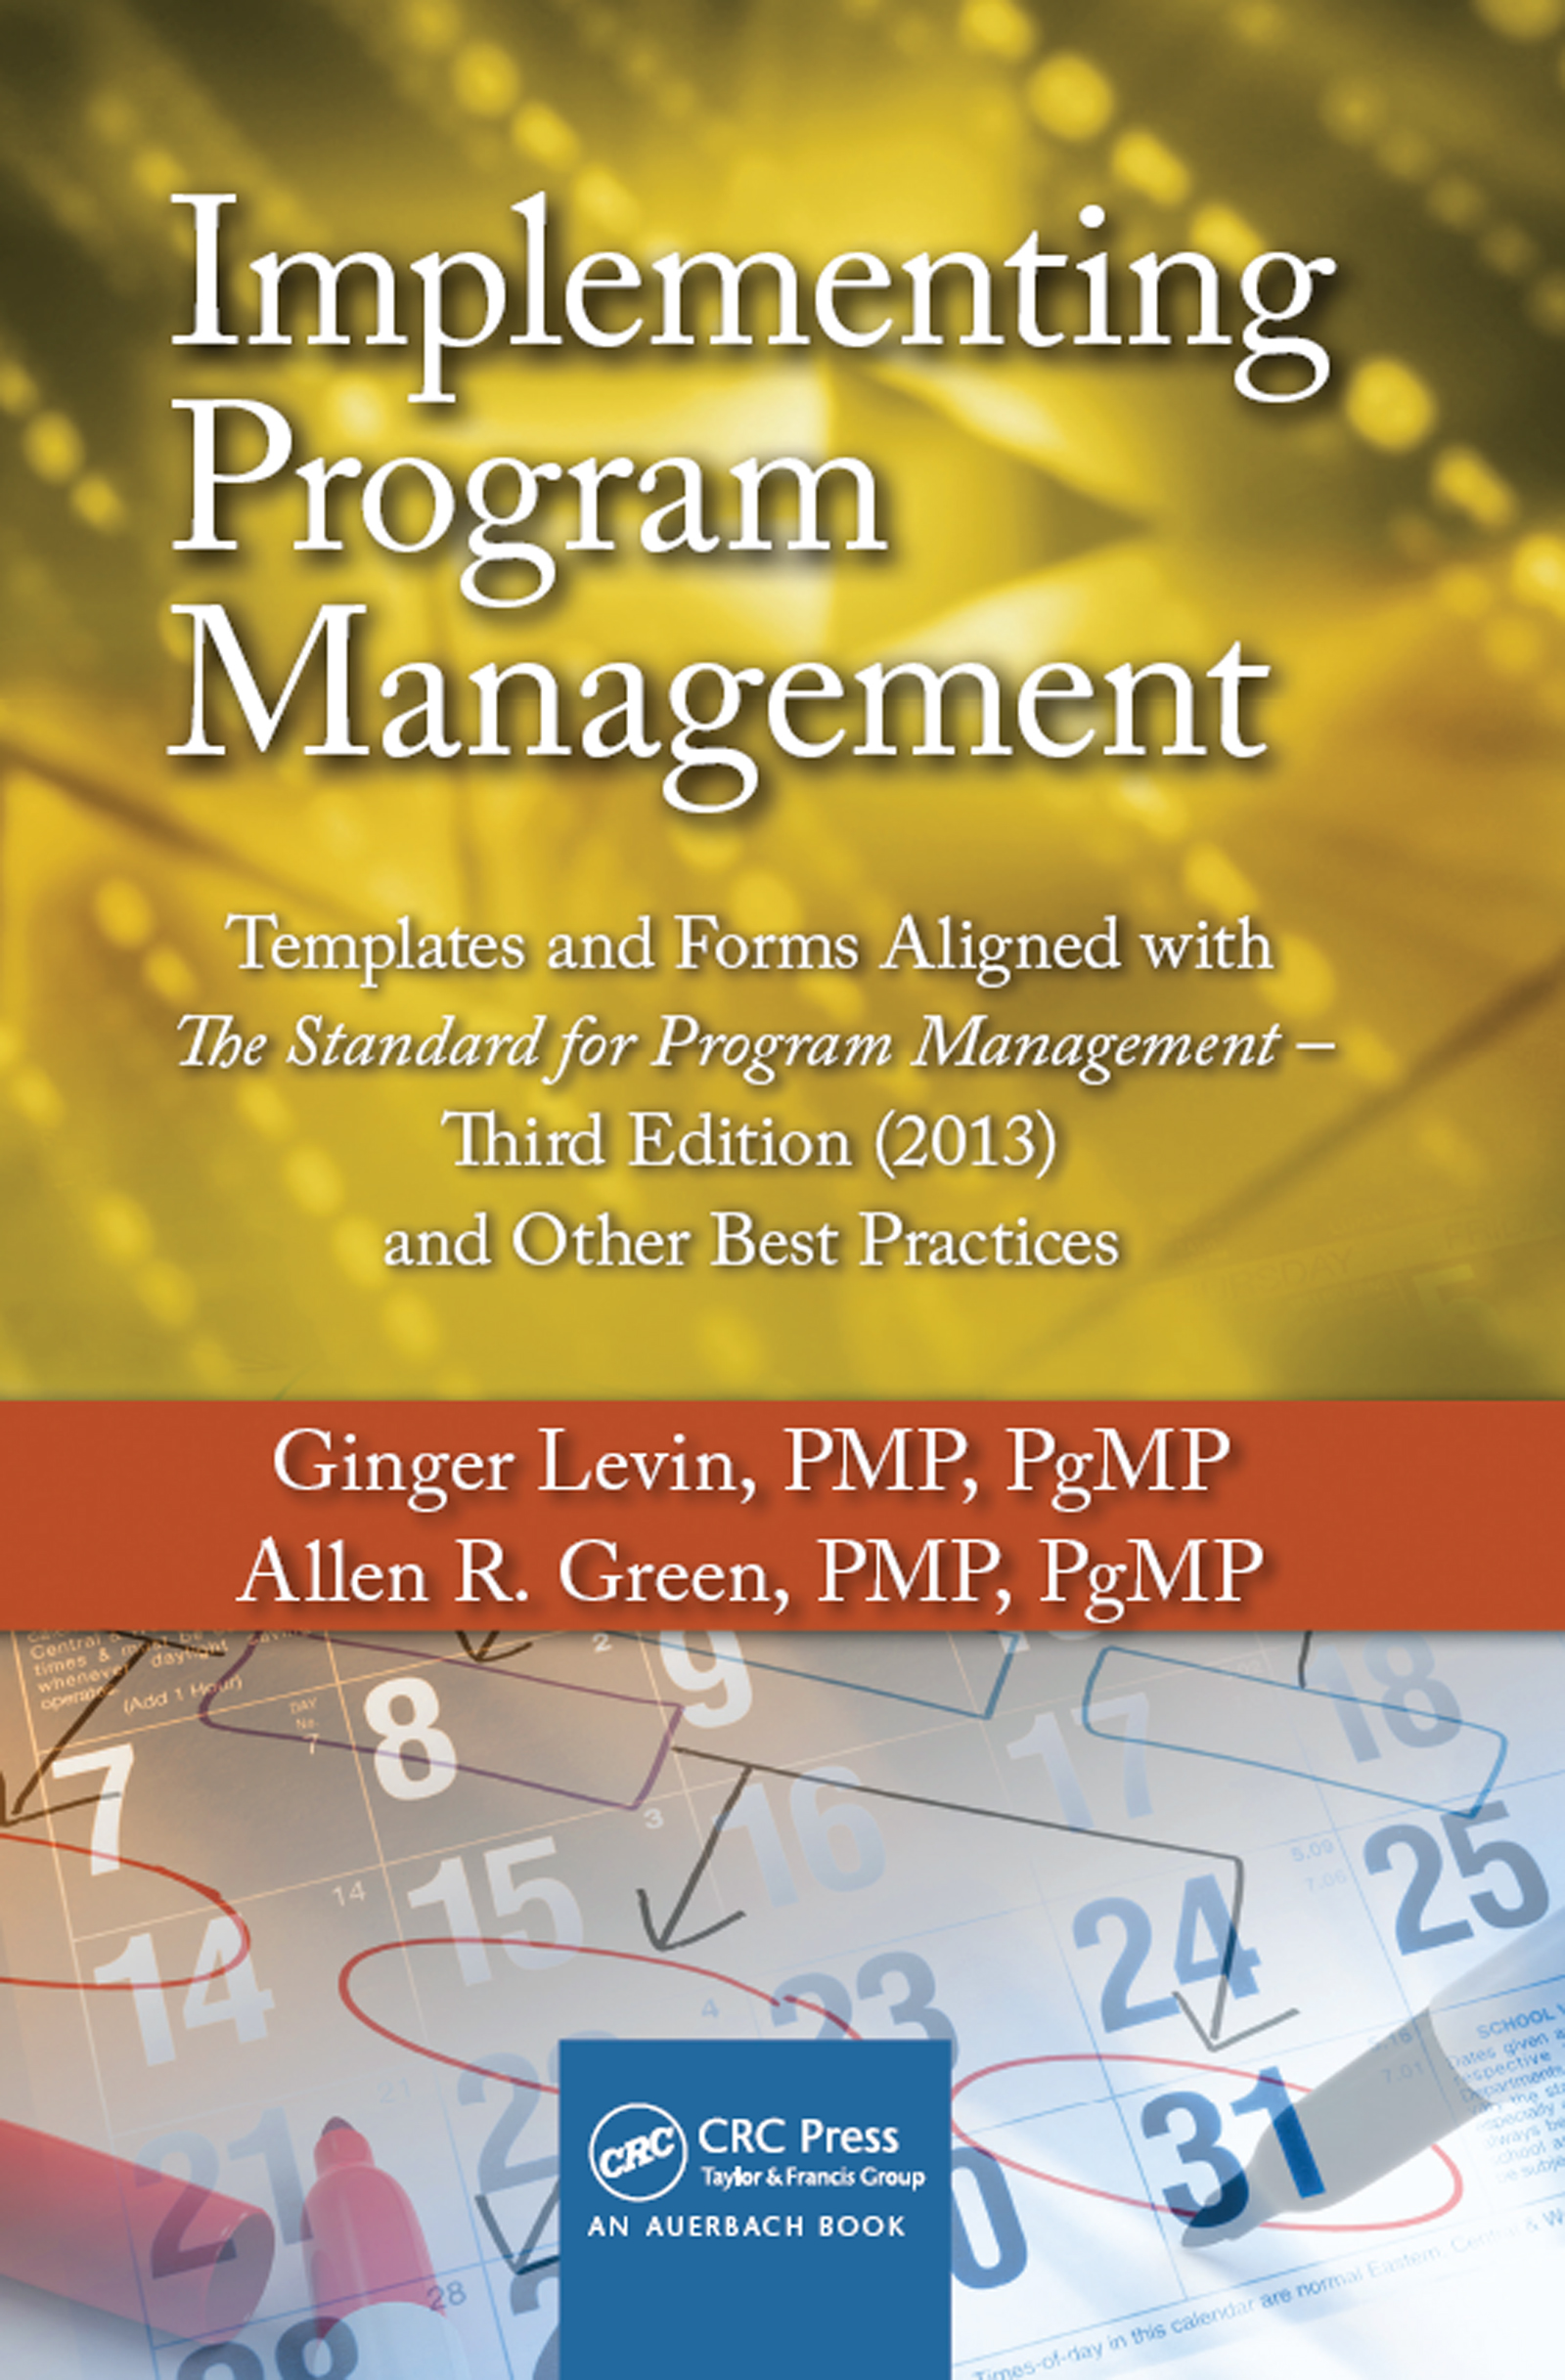 Implementing Program Management: Templates and Forms Aligned with the Standard for Program Management, Third Edition (2013) and Other Best Practices book cover